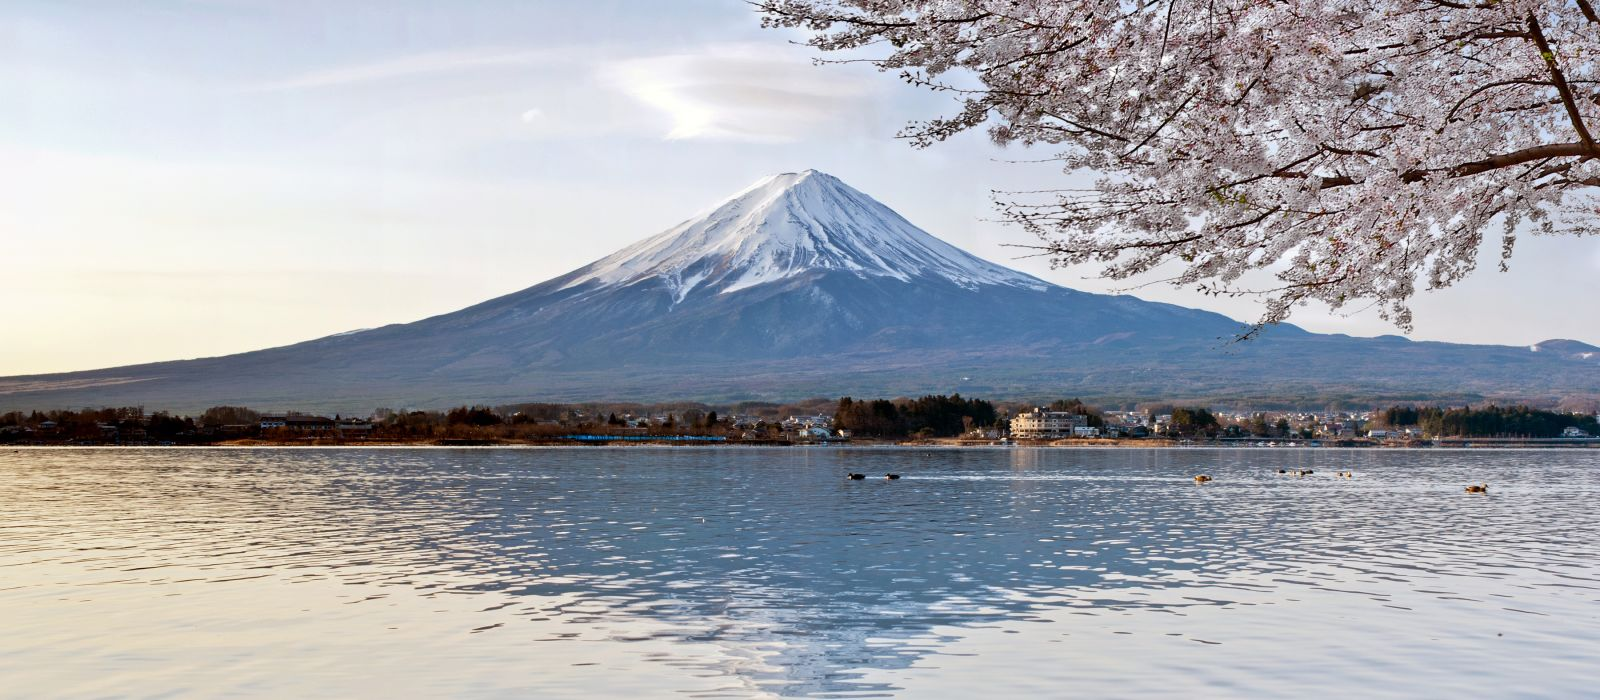 Cherry Blossom with Mt Fuji, Japan